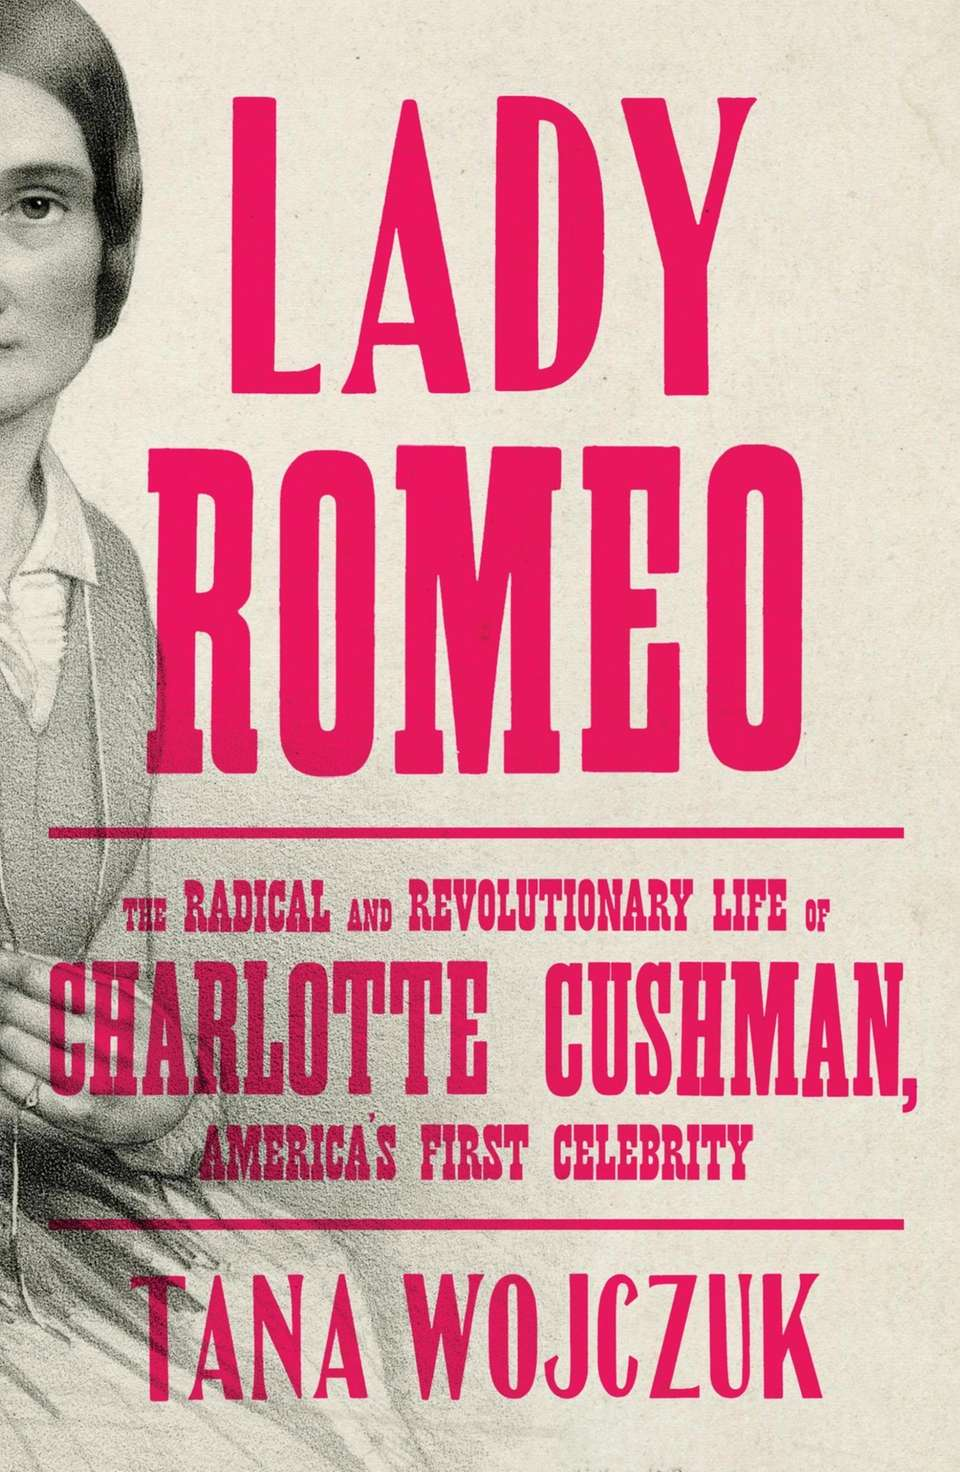 The name Charlotte Cushman may not mean much